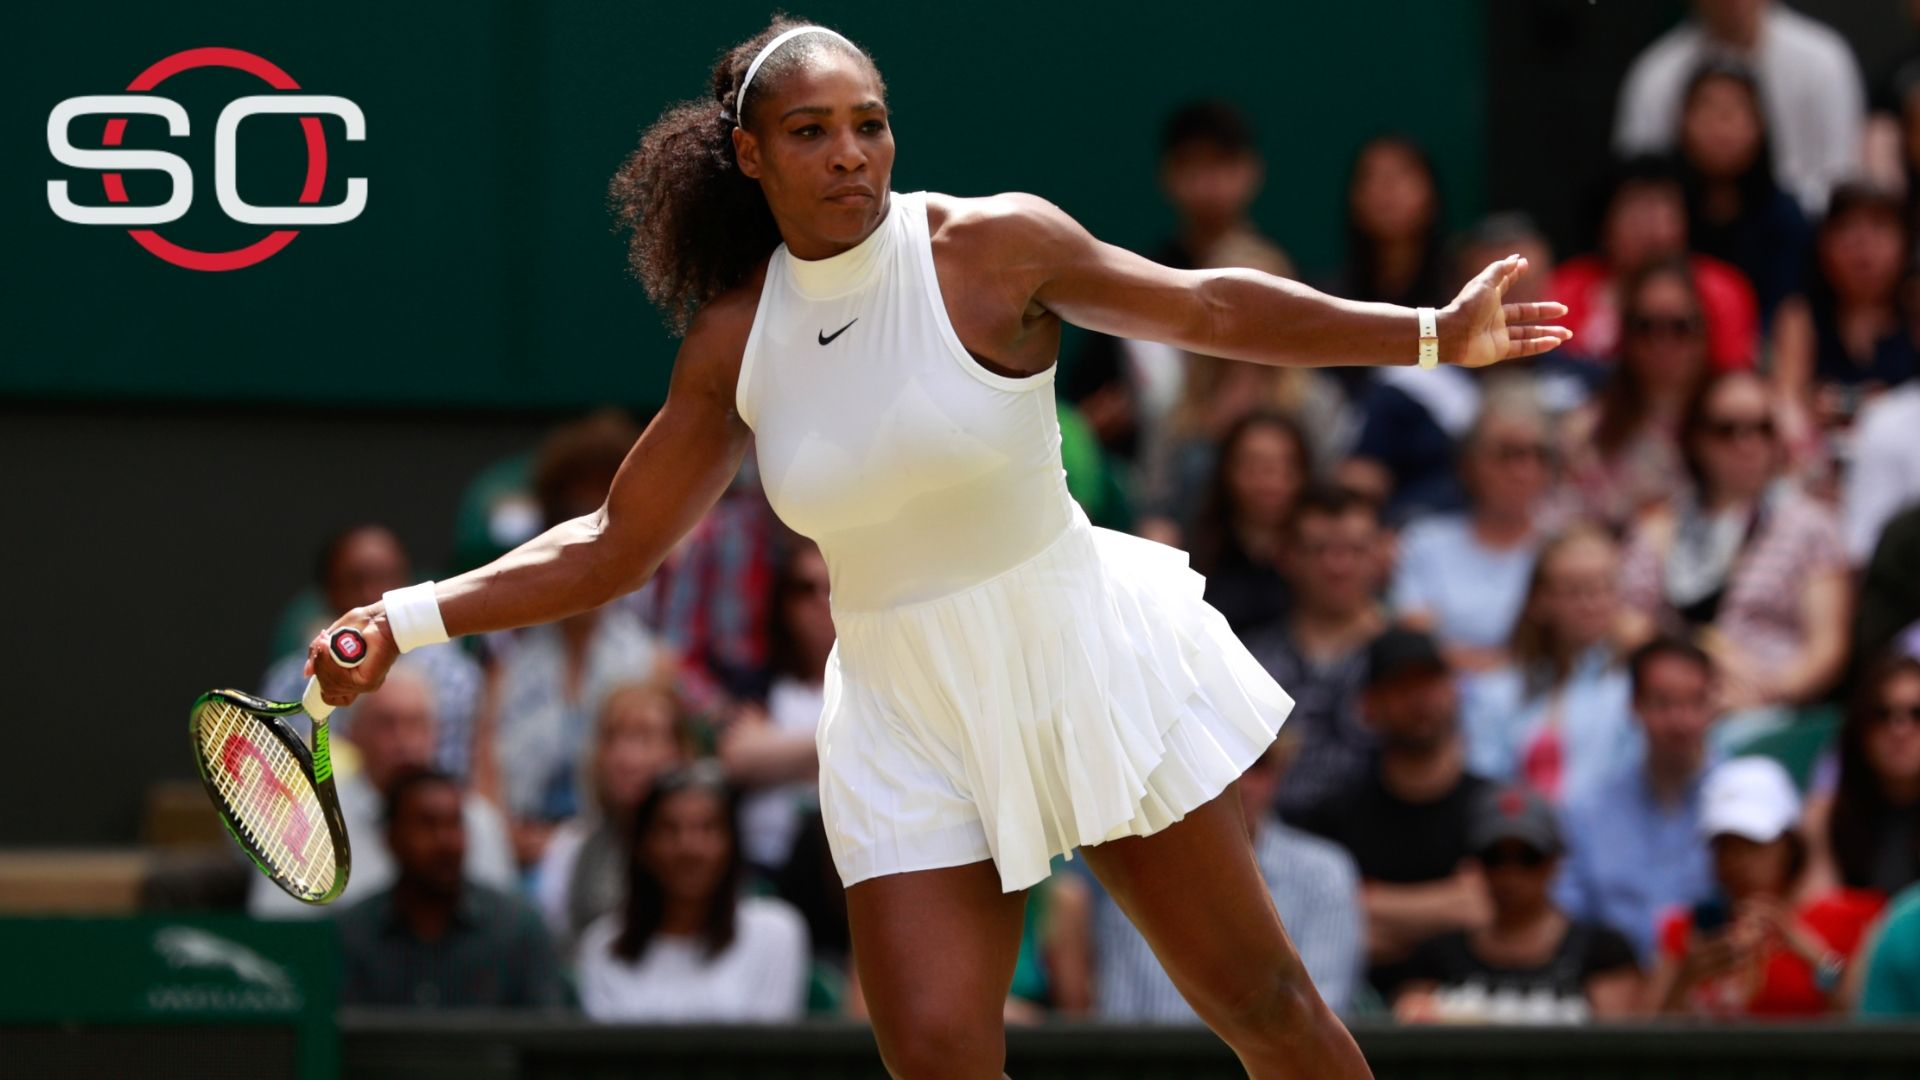 Serena cruises into fourth round